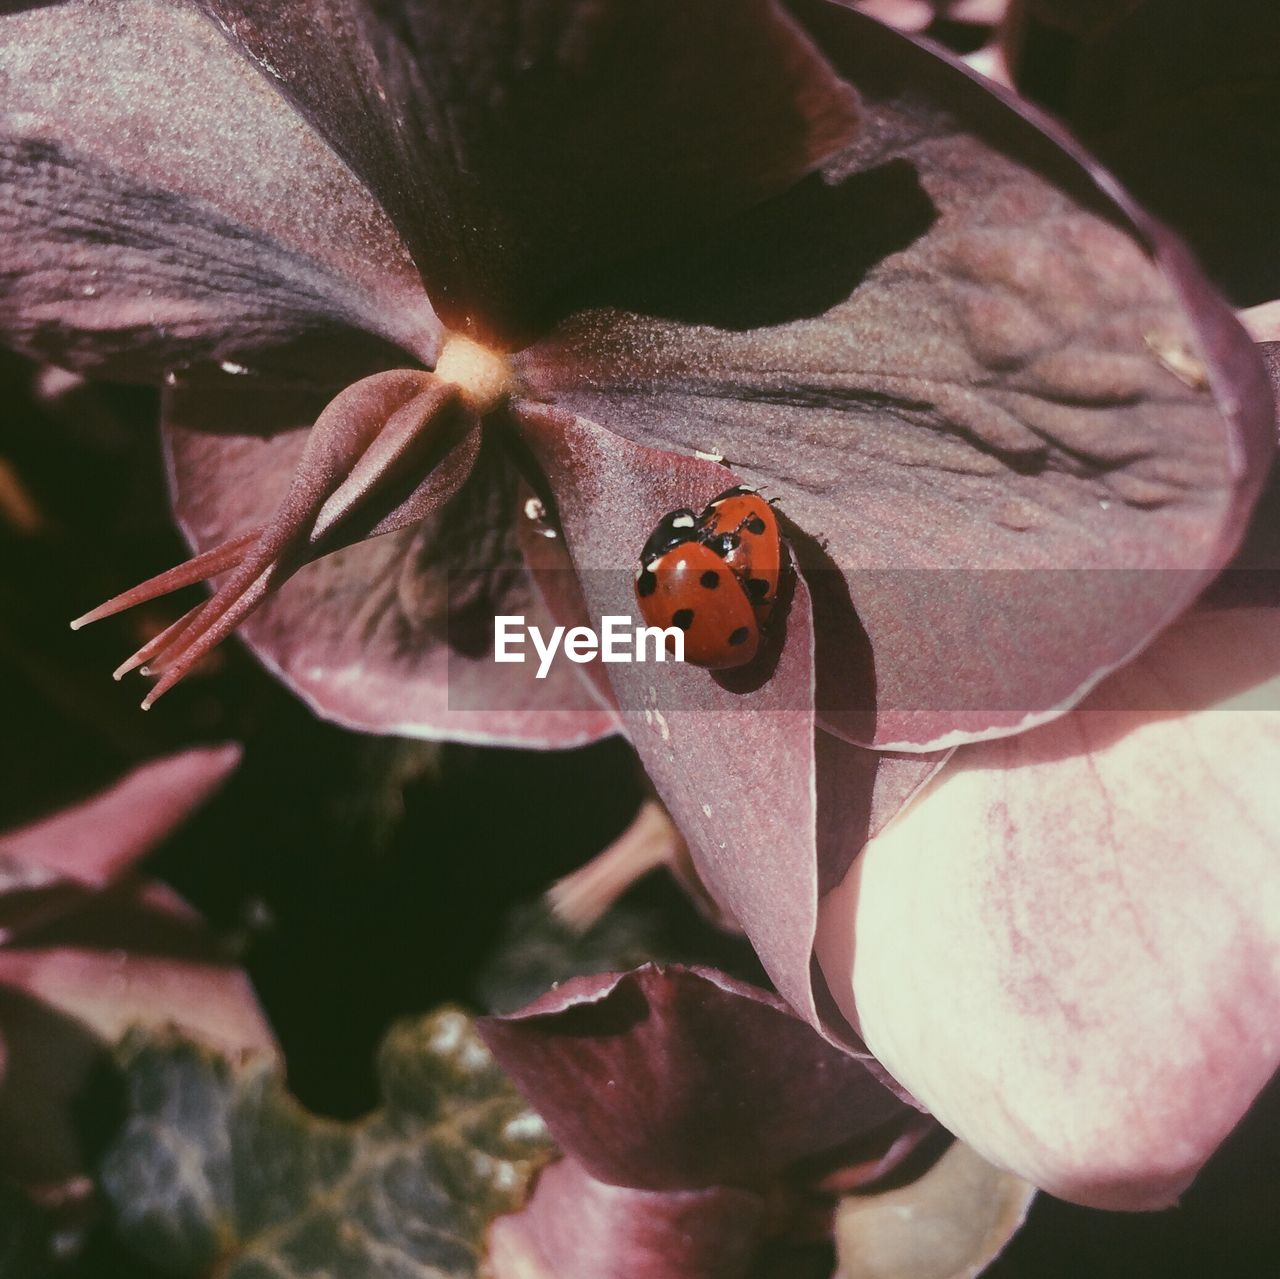 insect, invertebrate, animal wildlife, animals in the wild, animal themes, animal, one animal, ladybug, flower, close-up, beetle, flowering plant, beauty in nature, plant, no people, spotted, petal, nature, fragility, vulnerability, flower head, outdoors